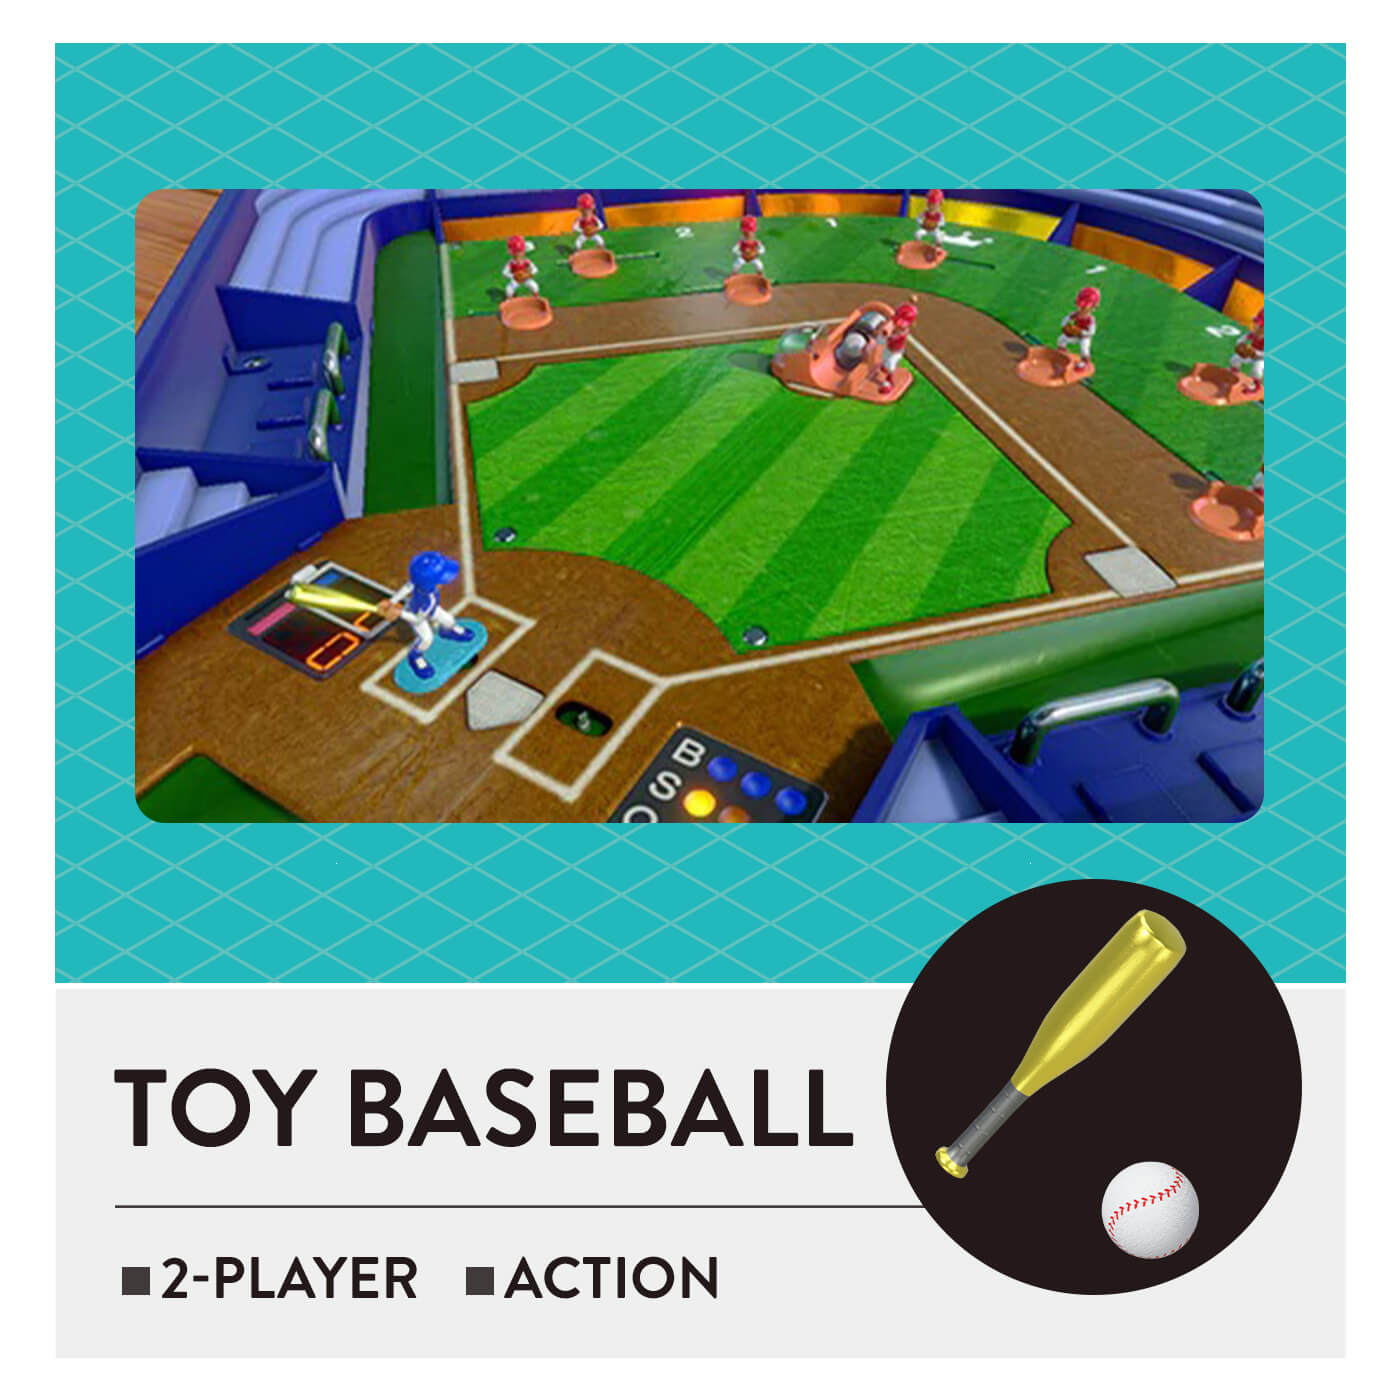 51 Worldwide Games - Toy Baseball